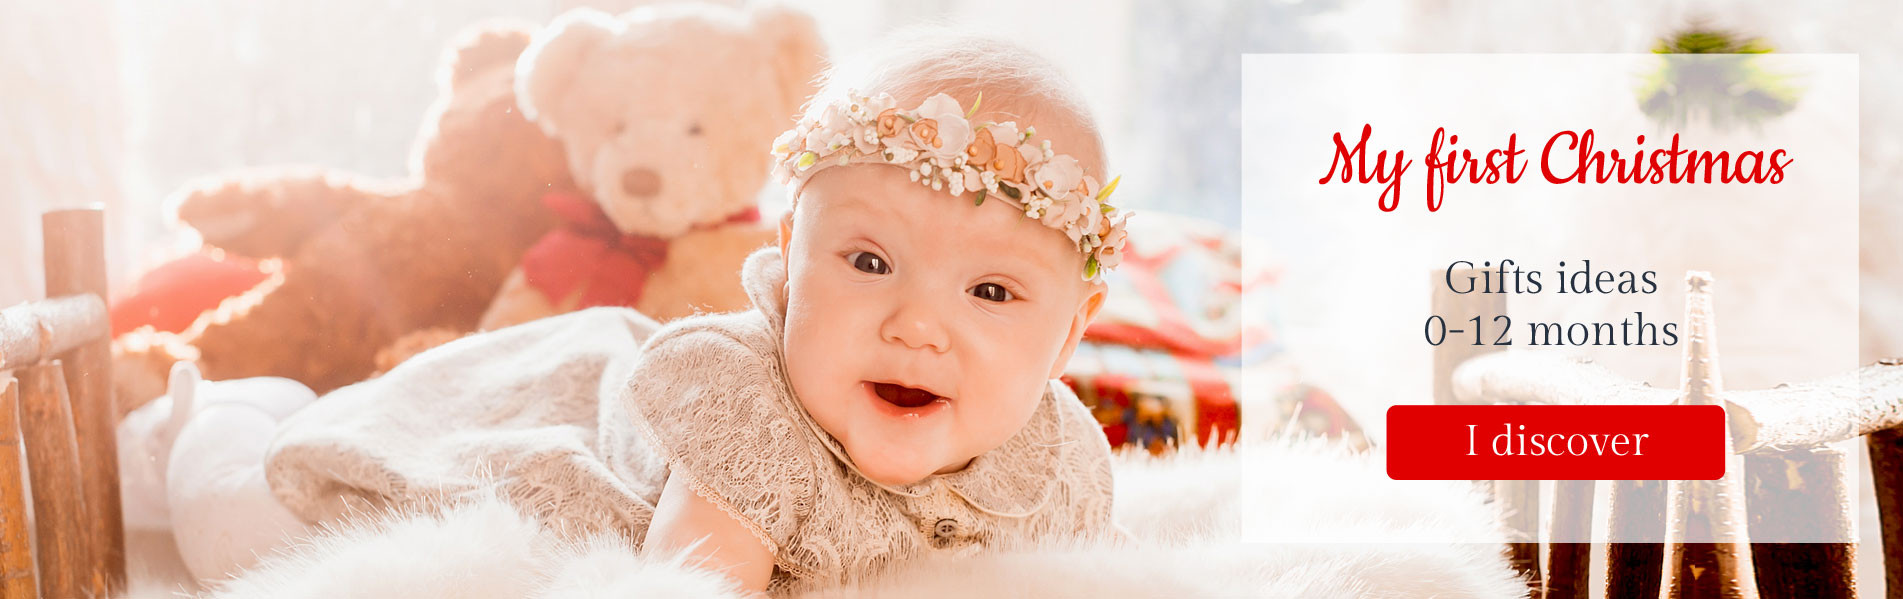 Gifts ideas 0-12 months